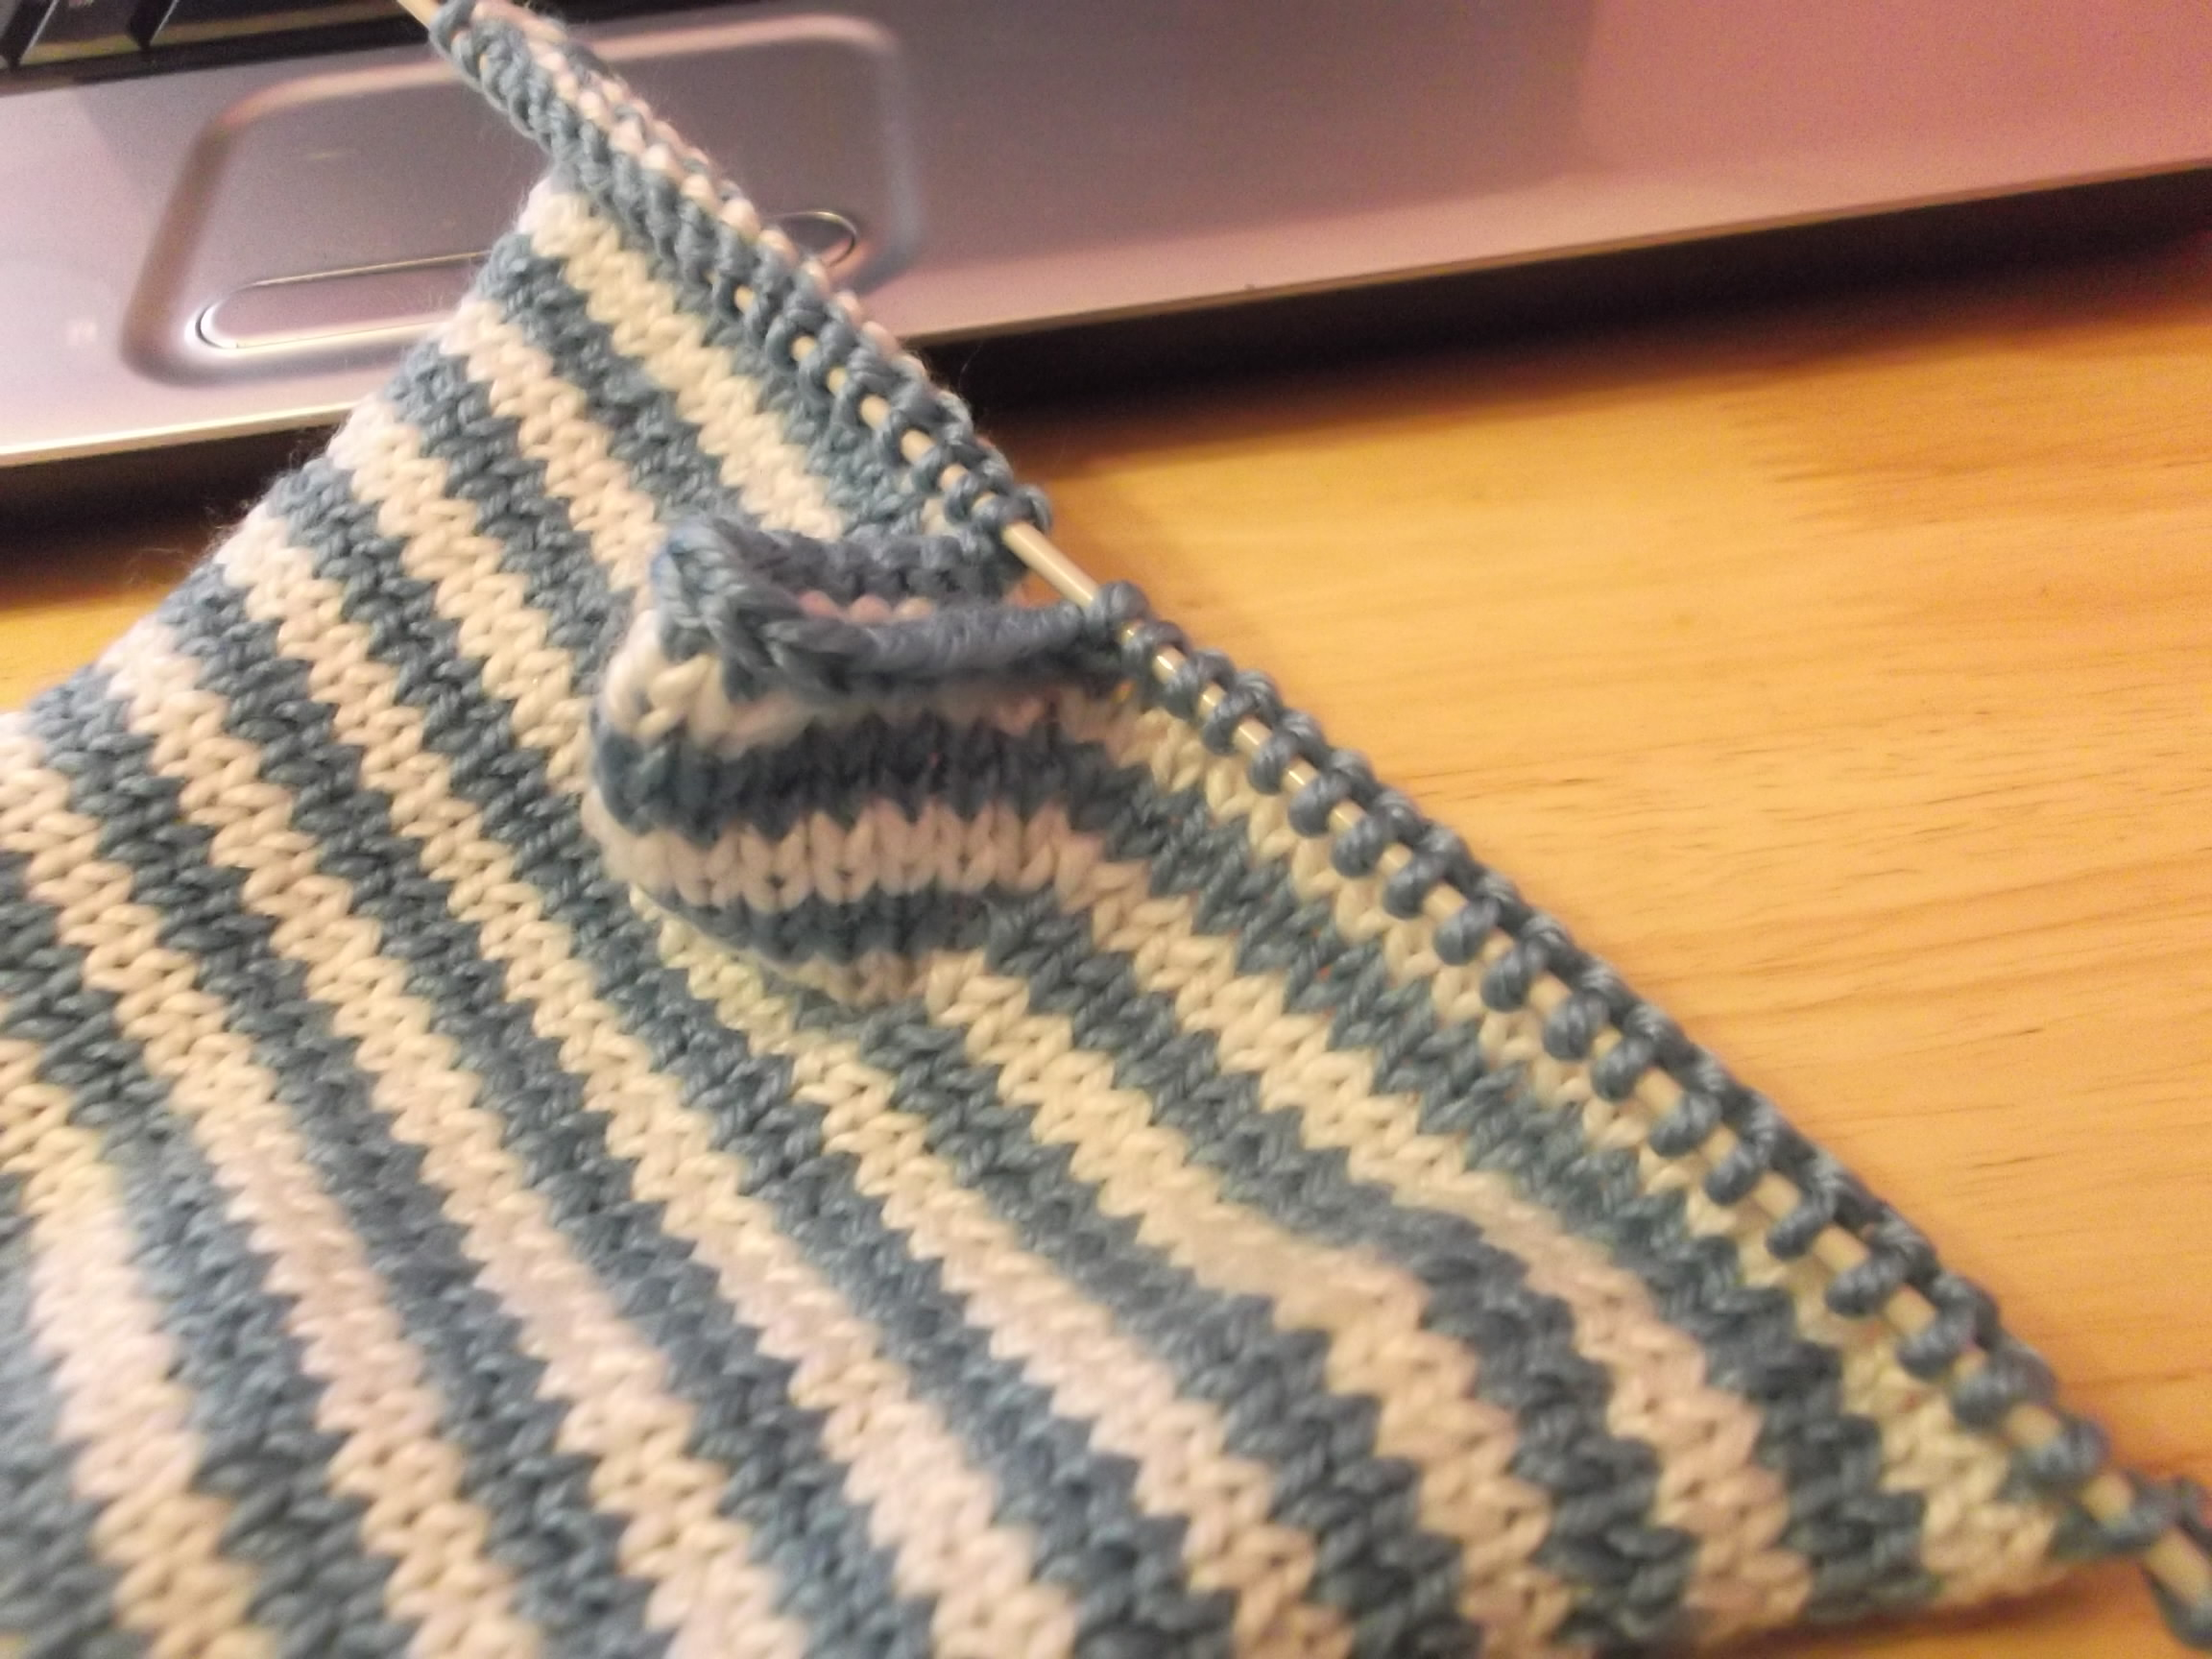 Fingerless Gloves - Stashbusting project - Mortgage Free in Three